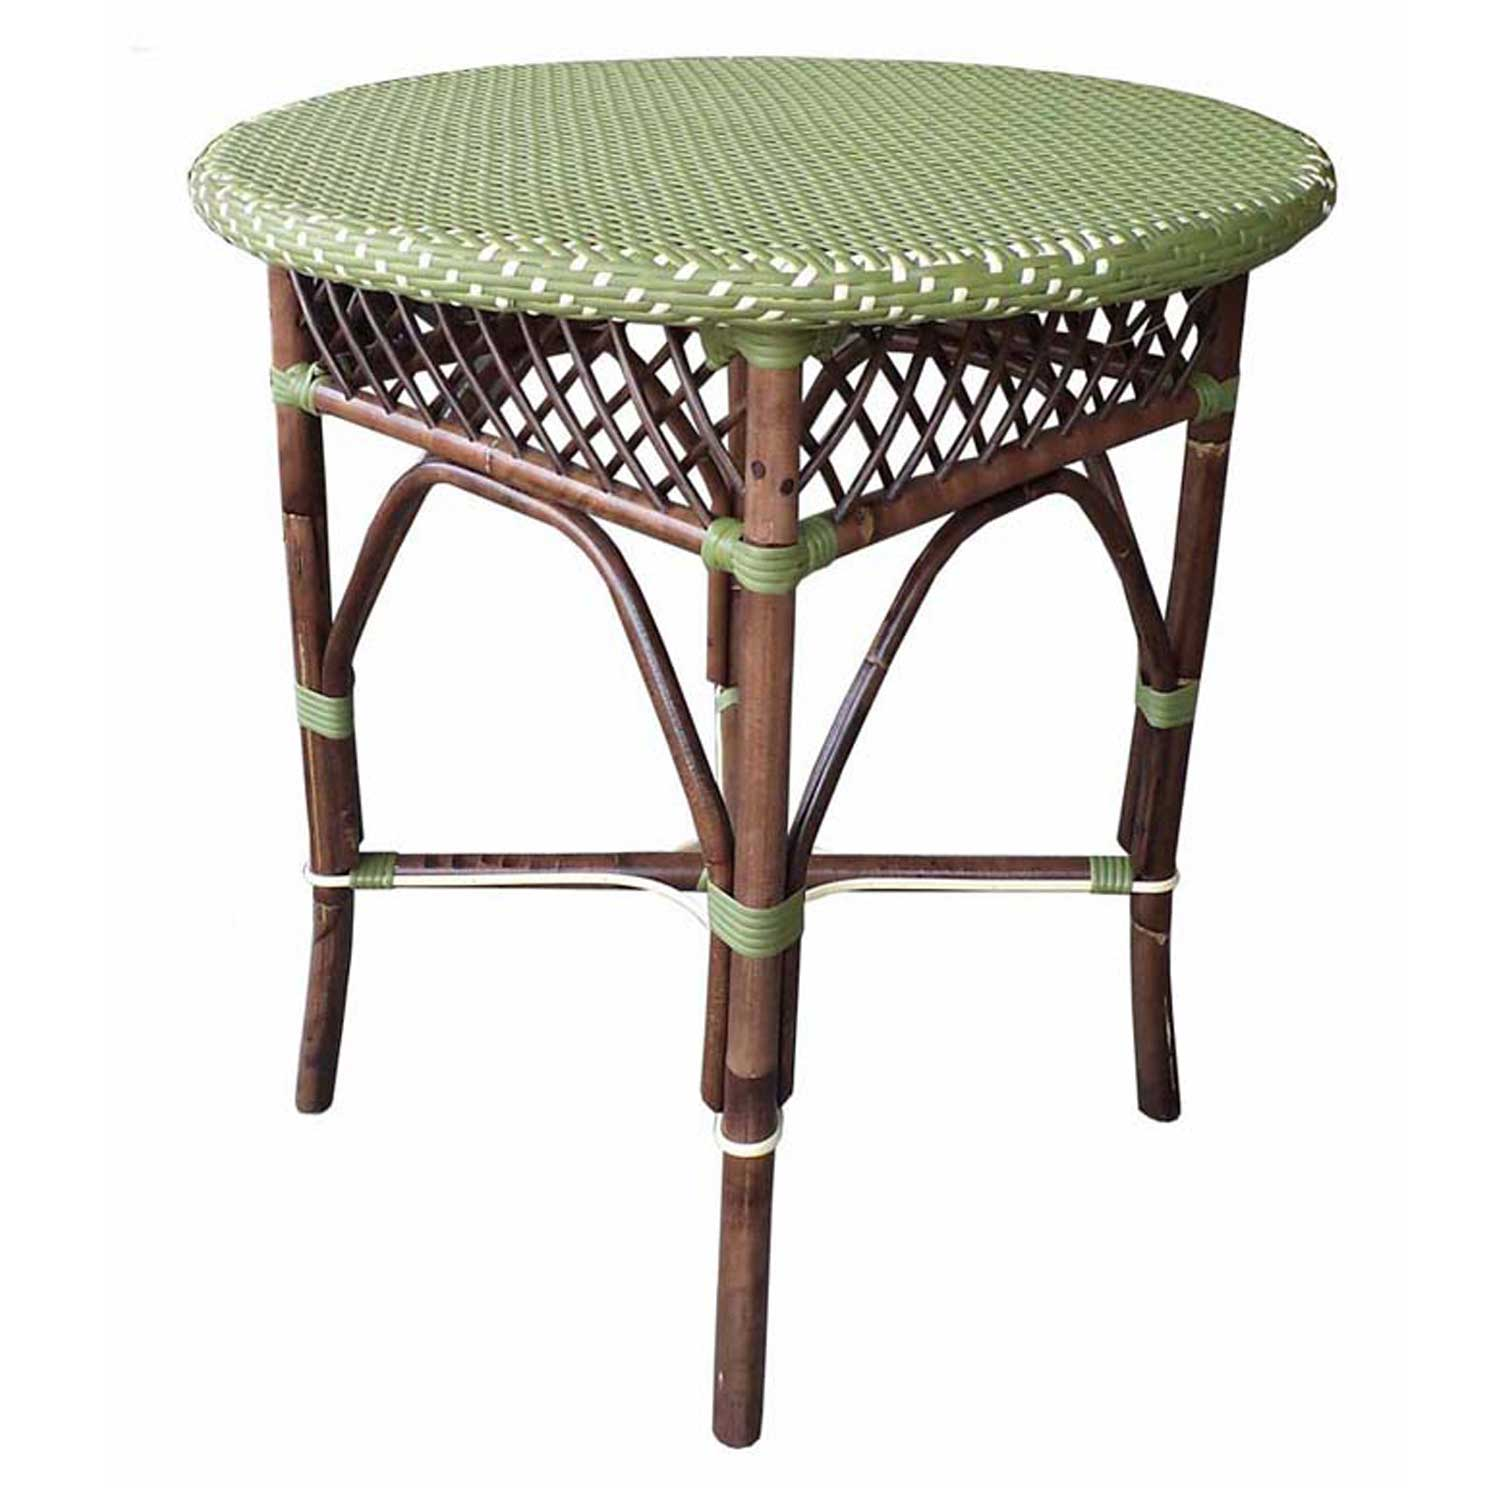 Paris Bistro Dining Table Padma's Plantation Green